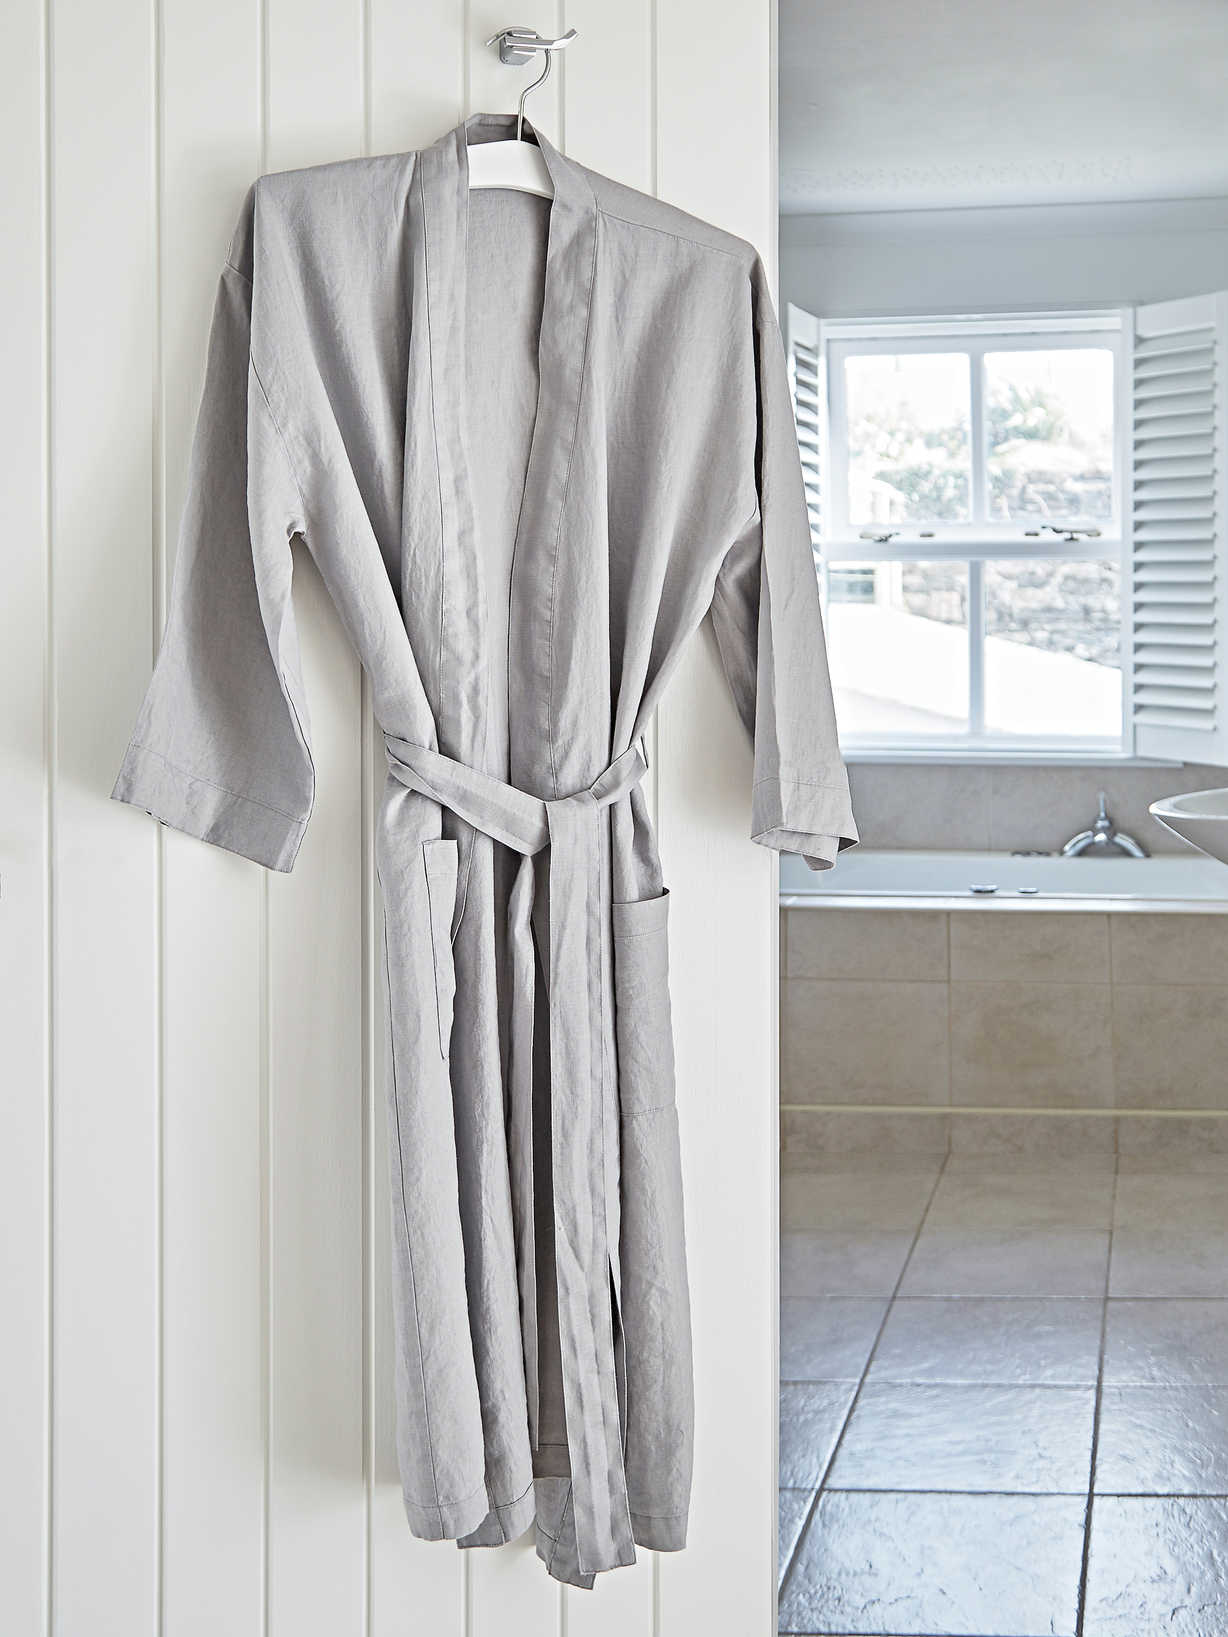 Nordic House Washed Linen Bathrobes - Grey